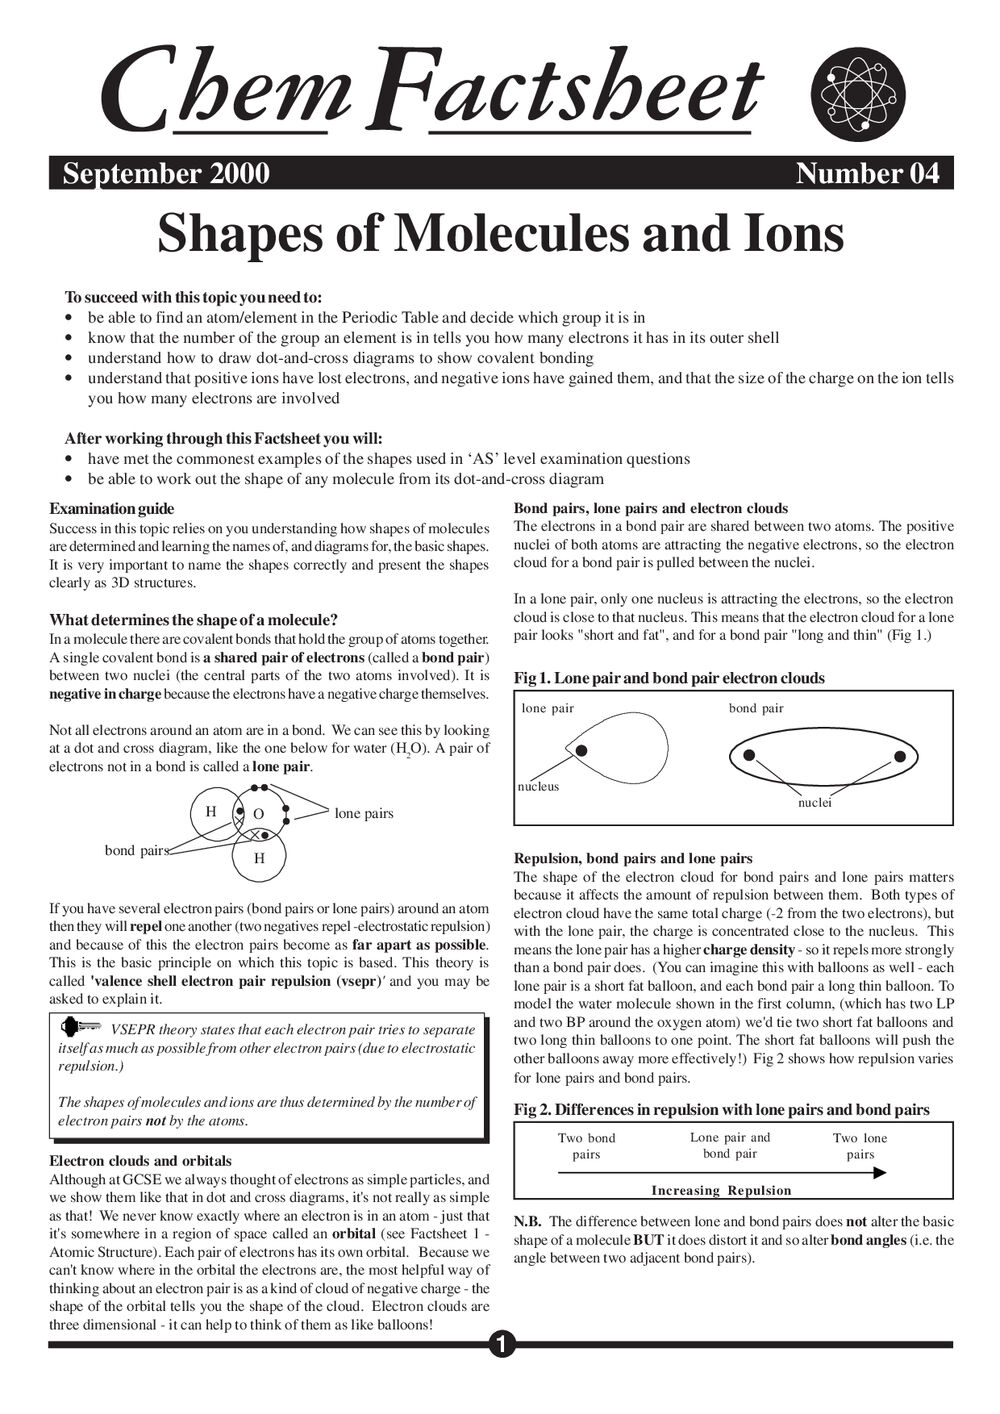 Shapes of Molecules and Ions - Curriculum Press